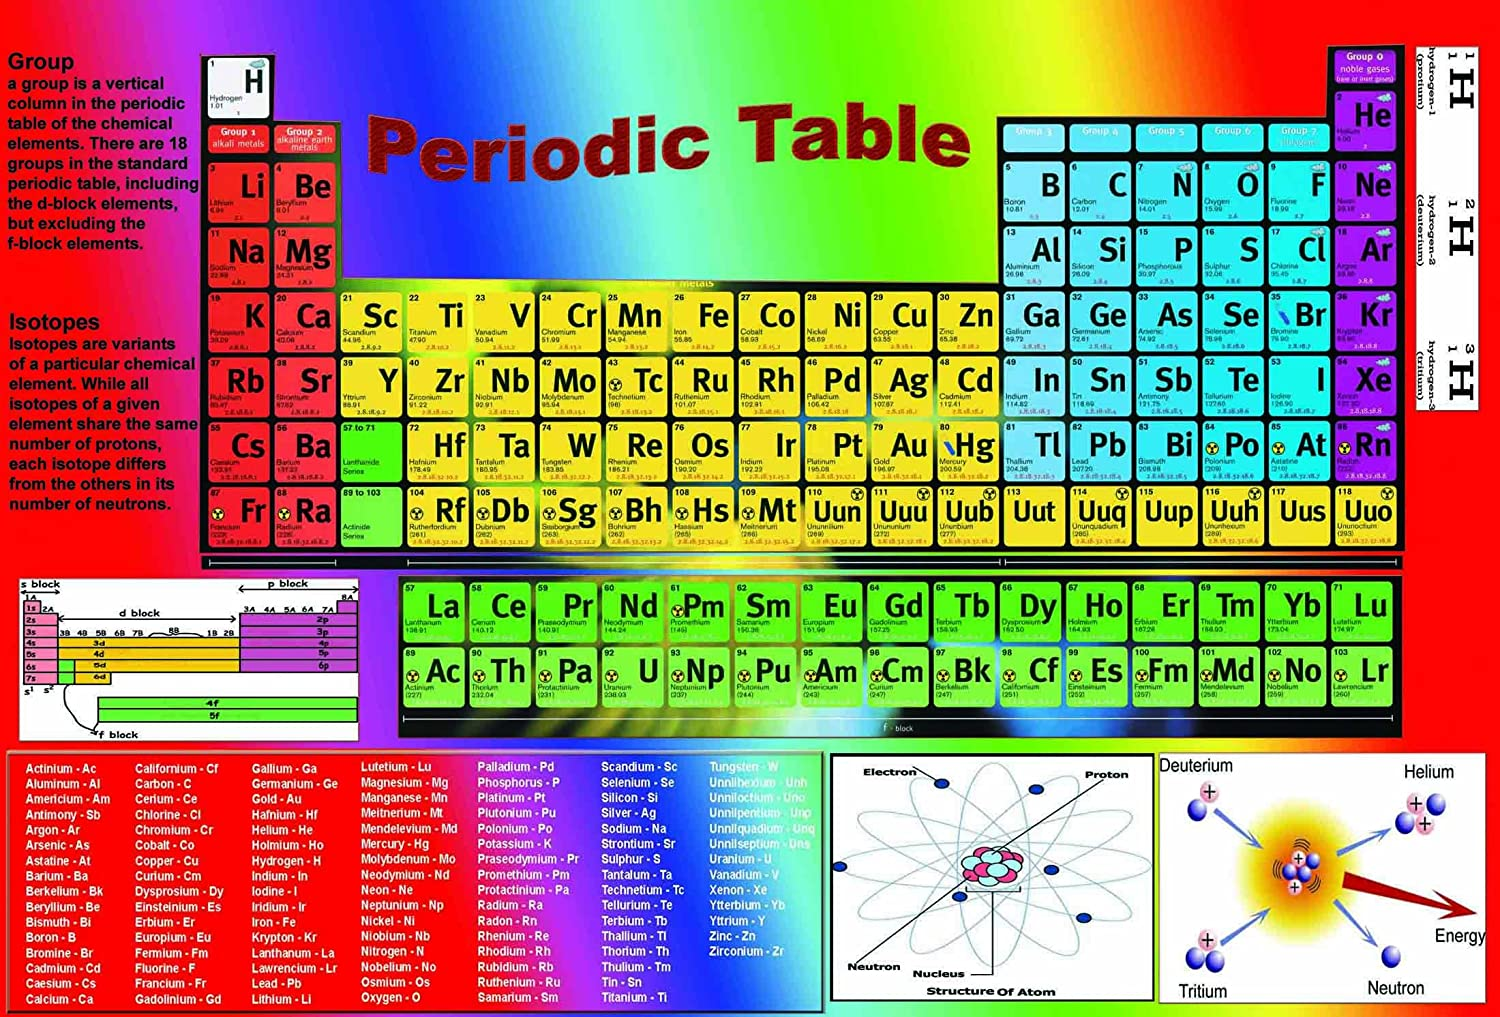 Amazon huge laminated periodic table elements chemistry amazon huge laminated periodic table elements chemistry chemical school type educational poster wall chart size 15x225 inches industrial gamestrikefo Images